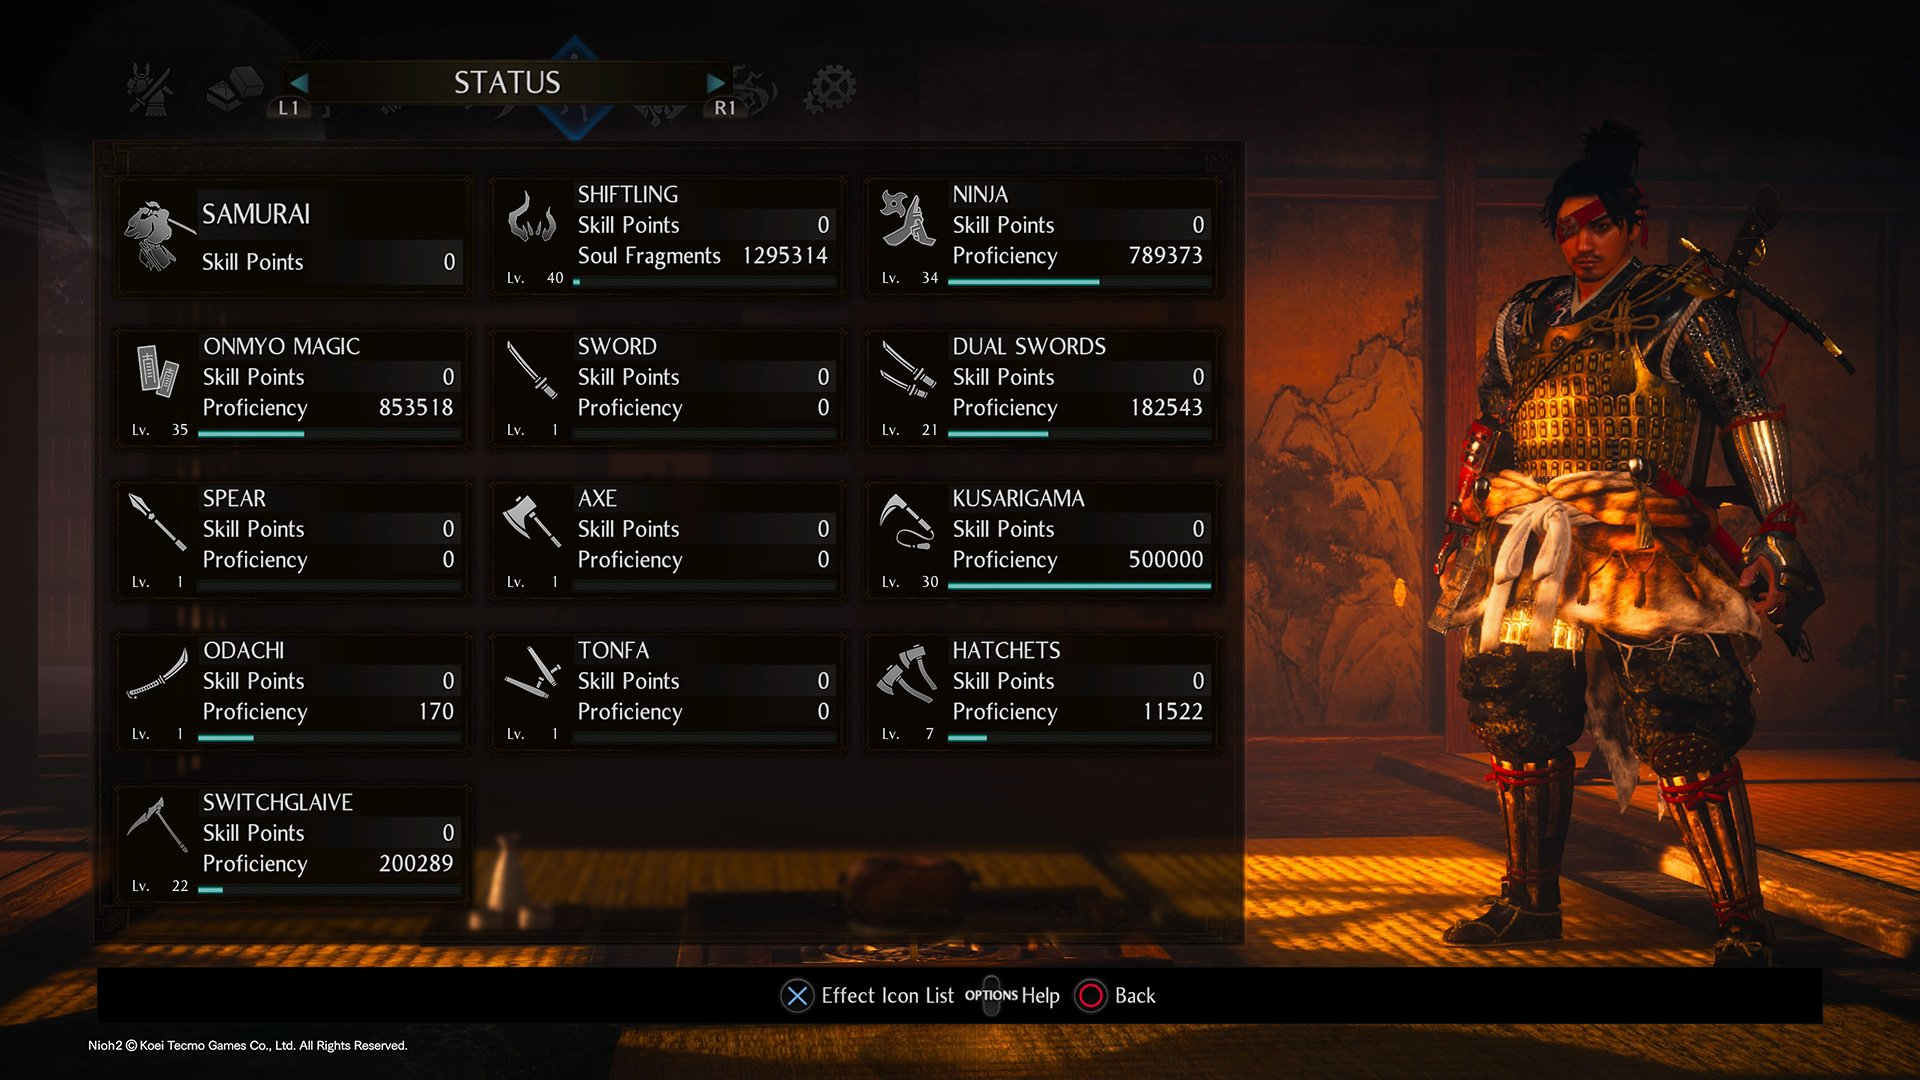 How to check your proficiency level in Nioh 2